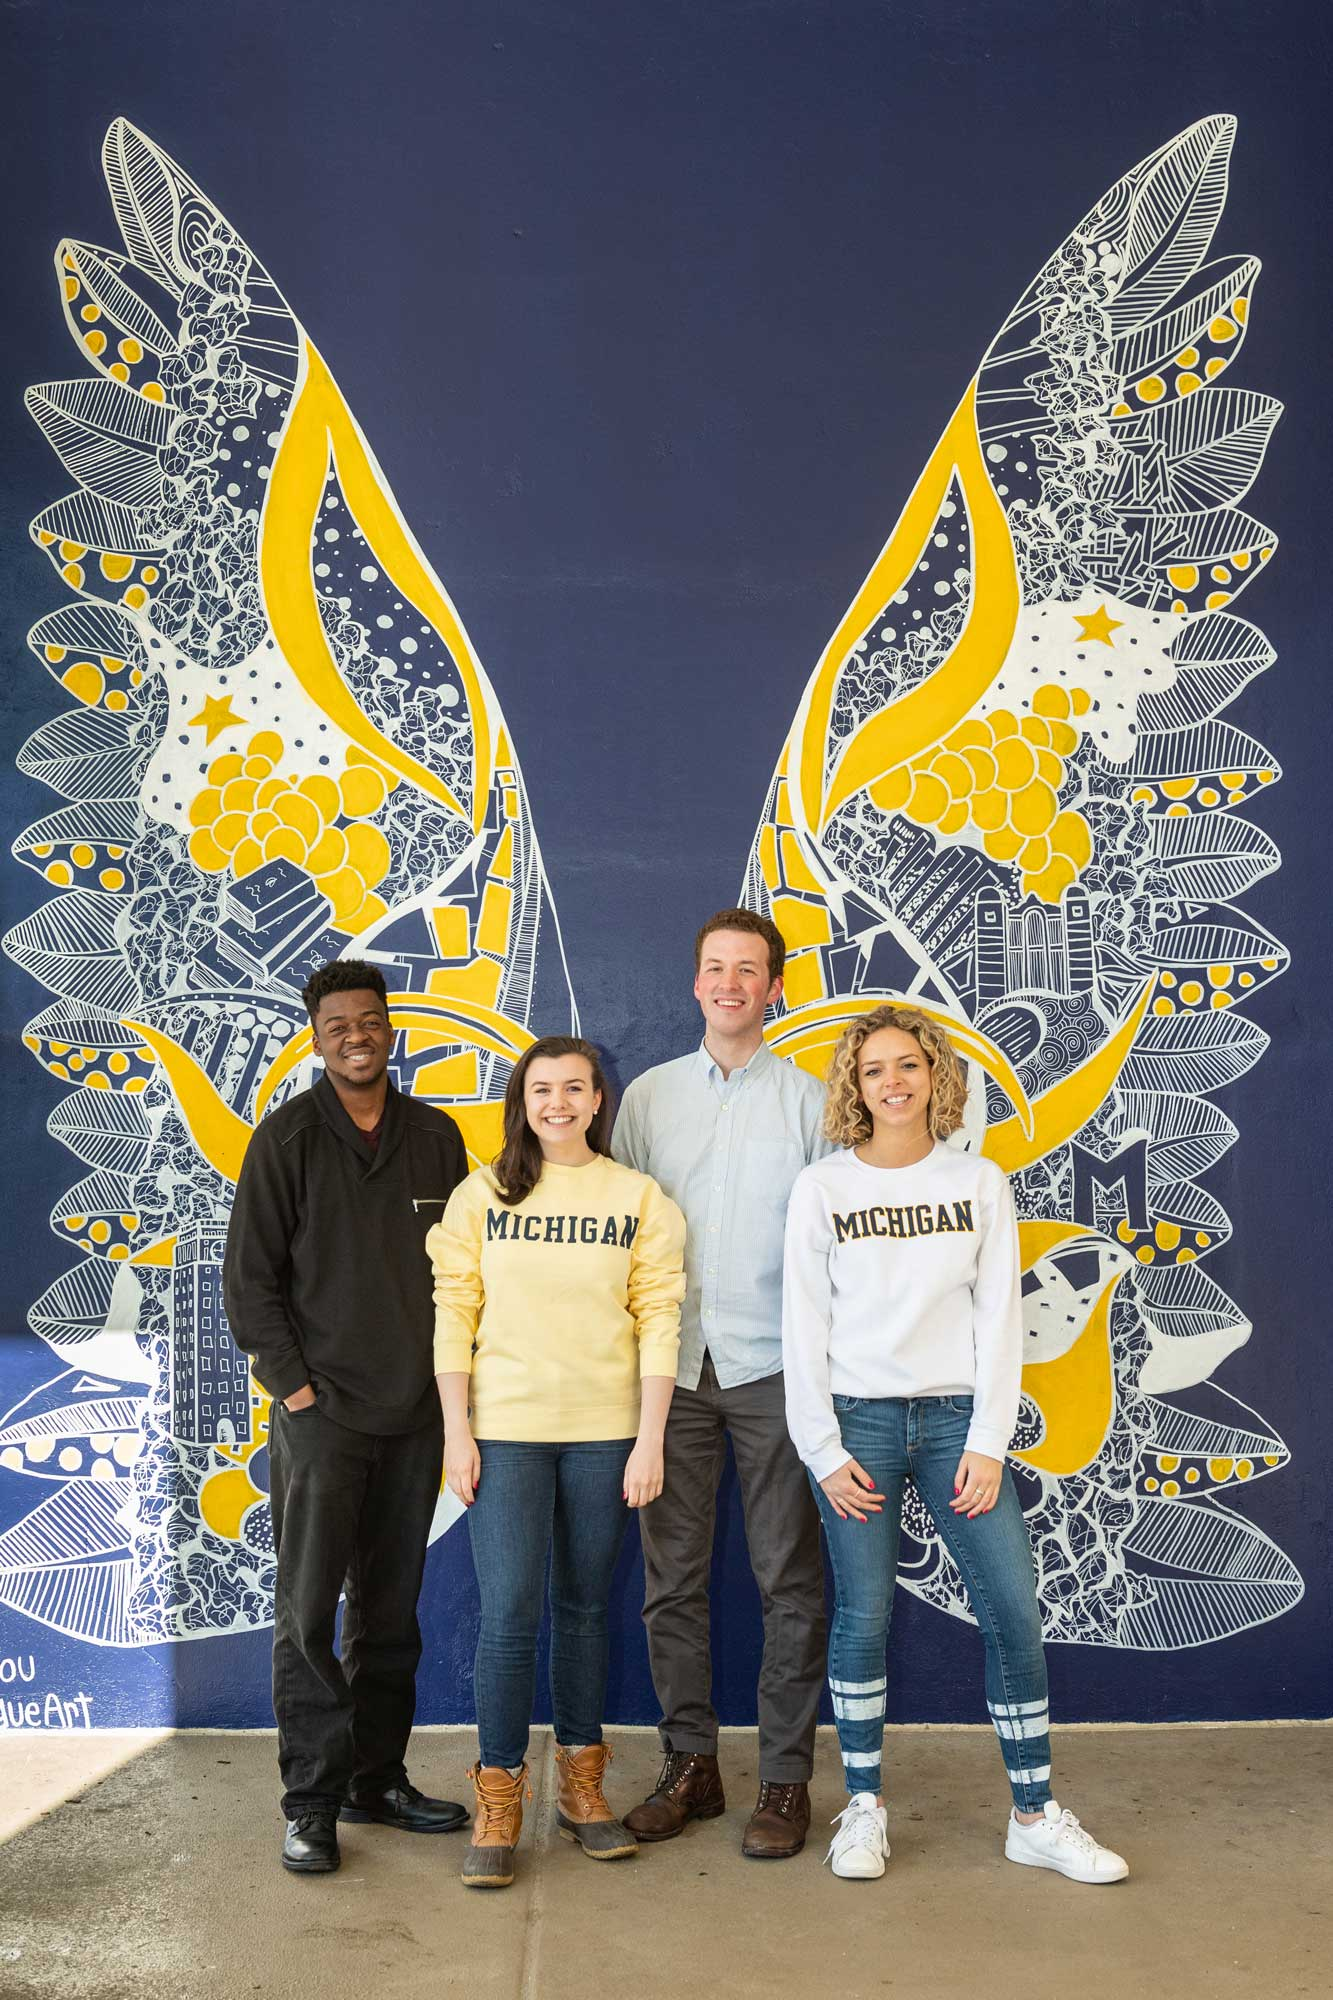 Graduating students (left to right) Kenan Milliean, Molly McGaan, Peter Shultz and Julia Ross. Image credit: Scott Soderberg, Michigan Photography